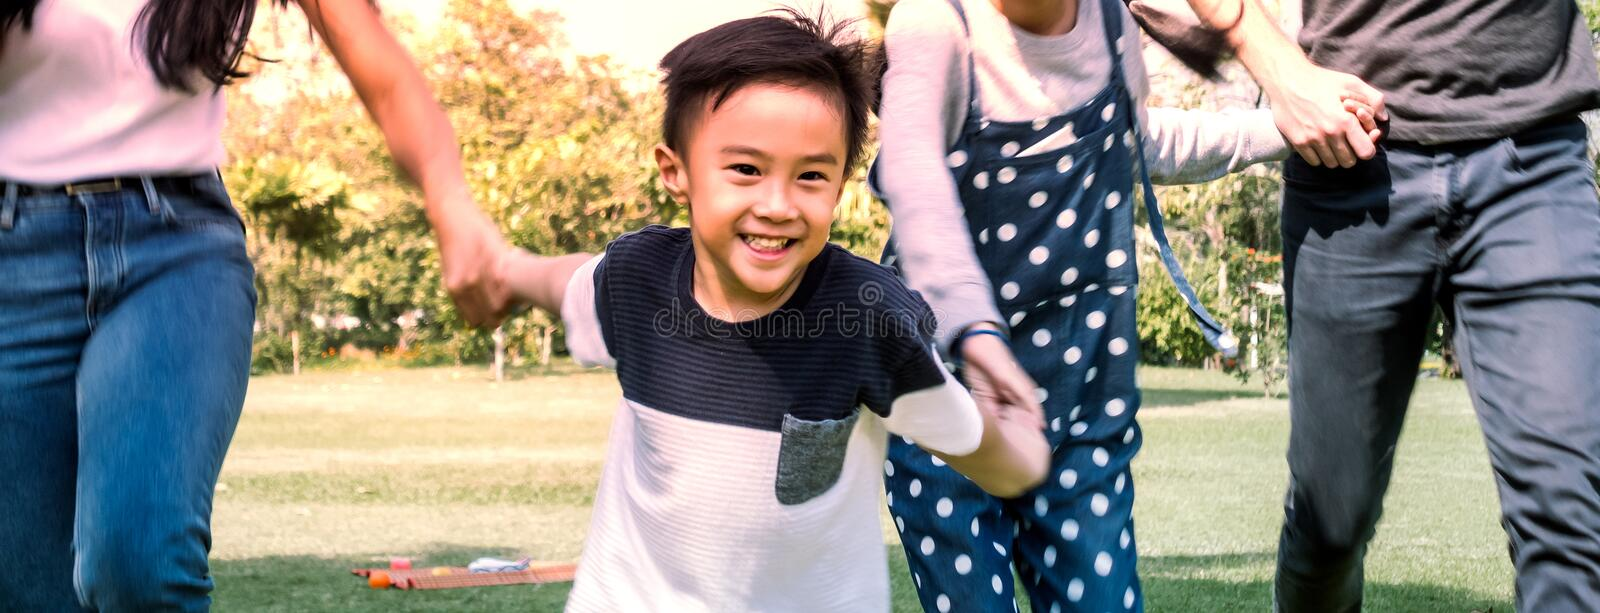 Boy playing with family having fun in summer park. stock photography